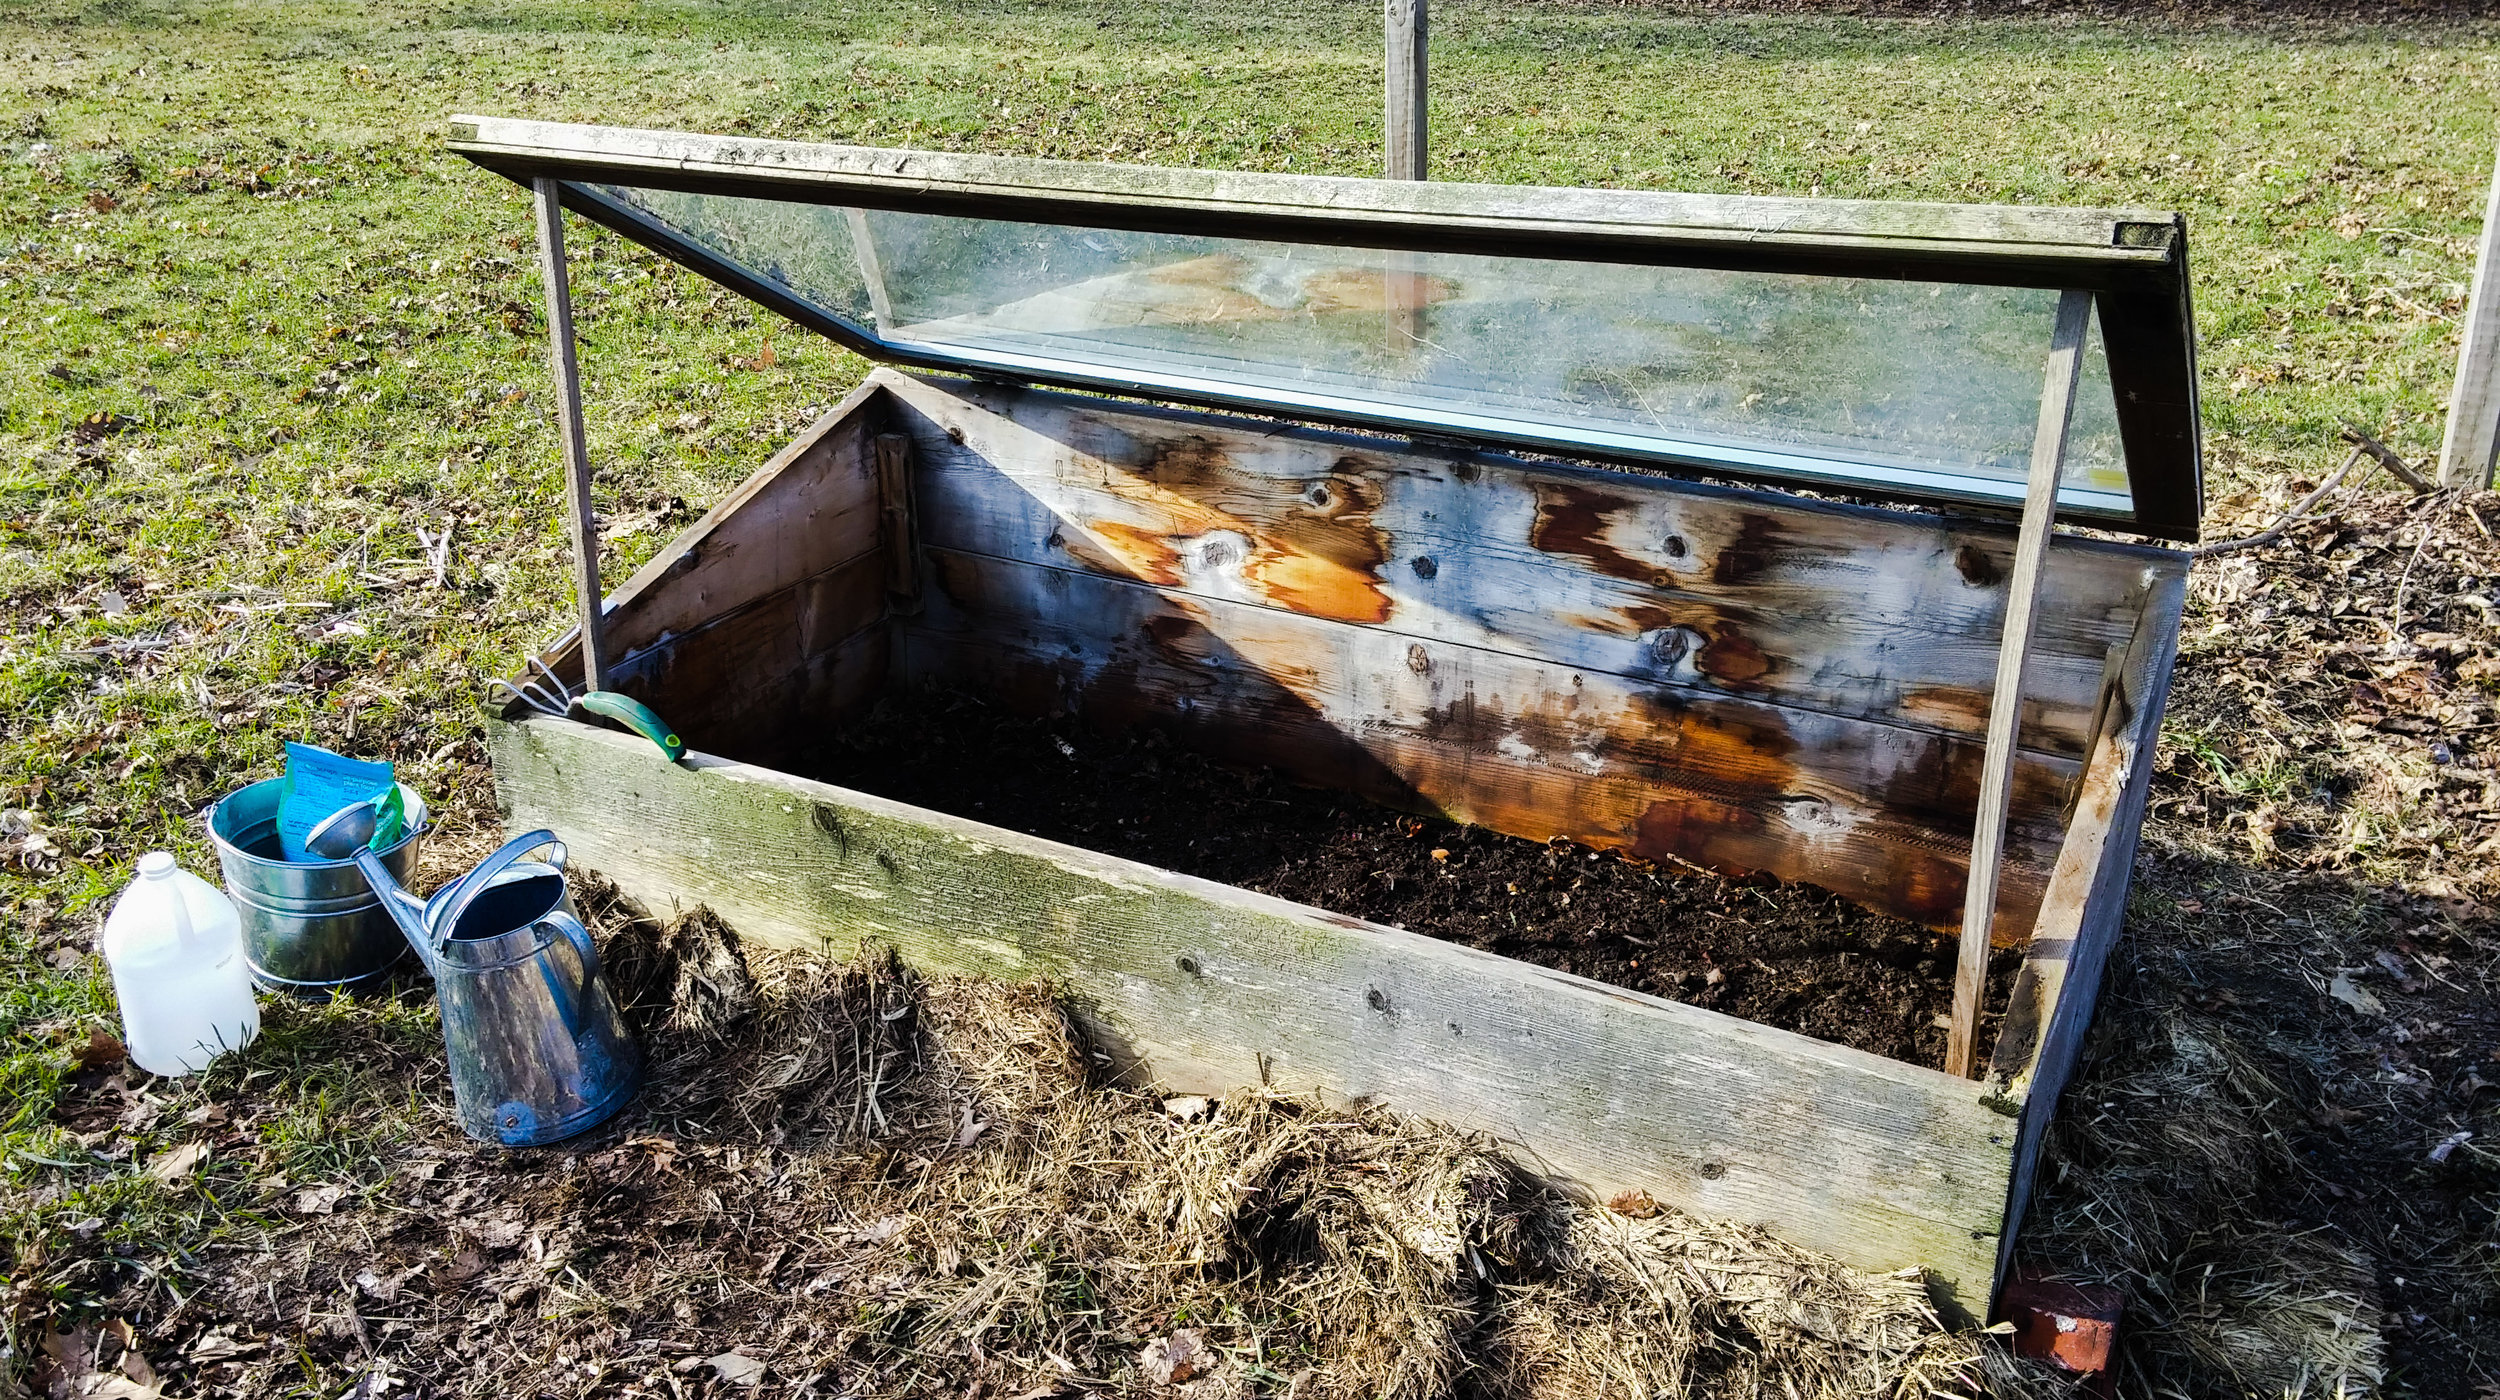 This cold frame will allow us to start salad greens earlier than normal by keeping the seeds and tender plants safe from the still-cold and unpredictable April weather.